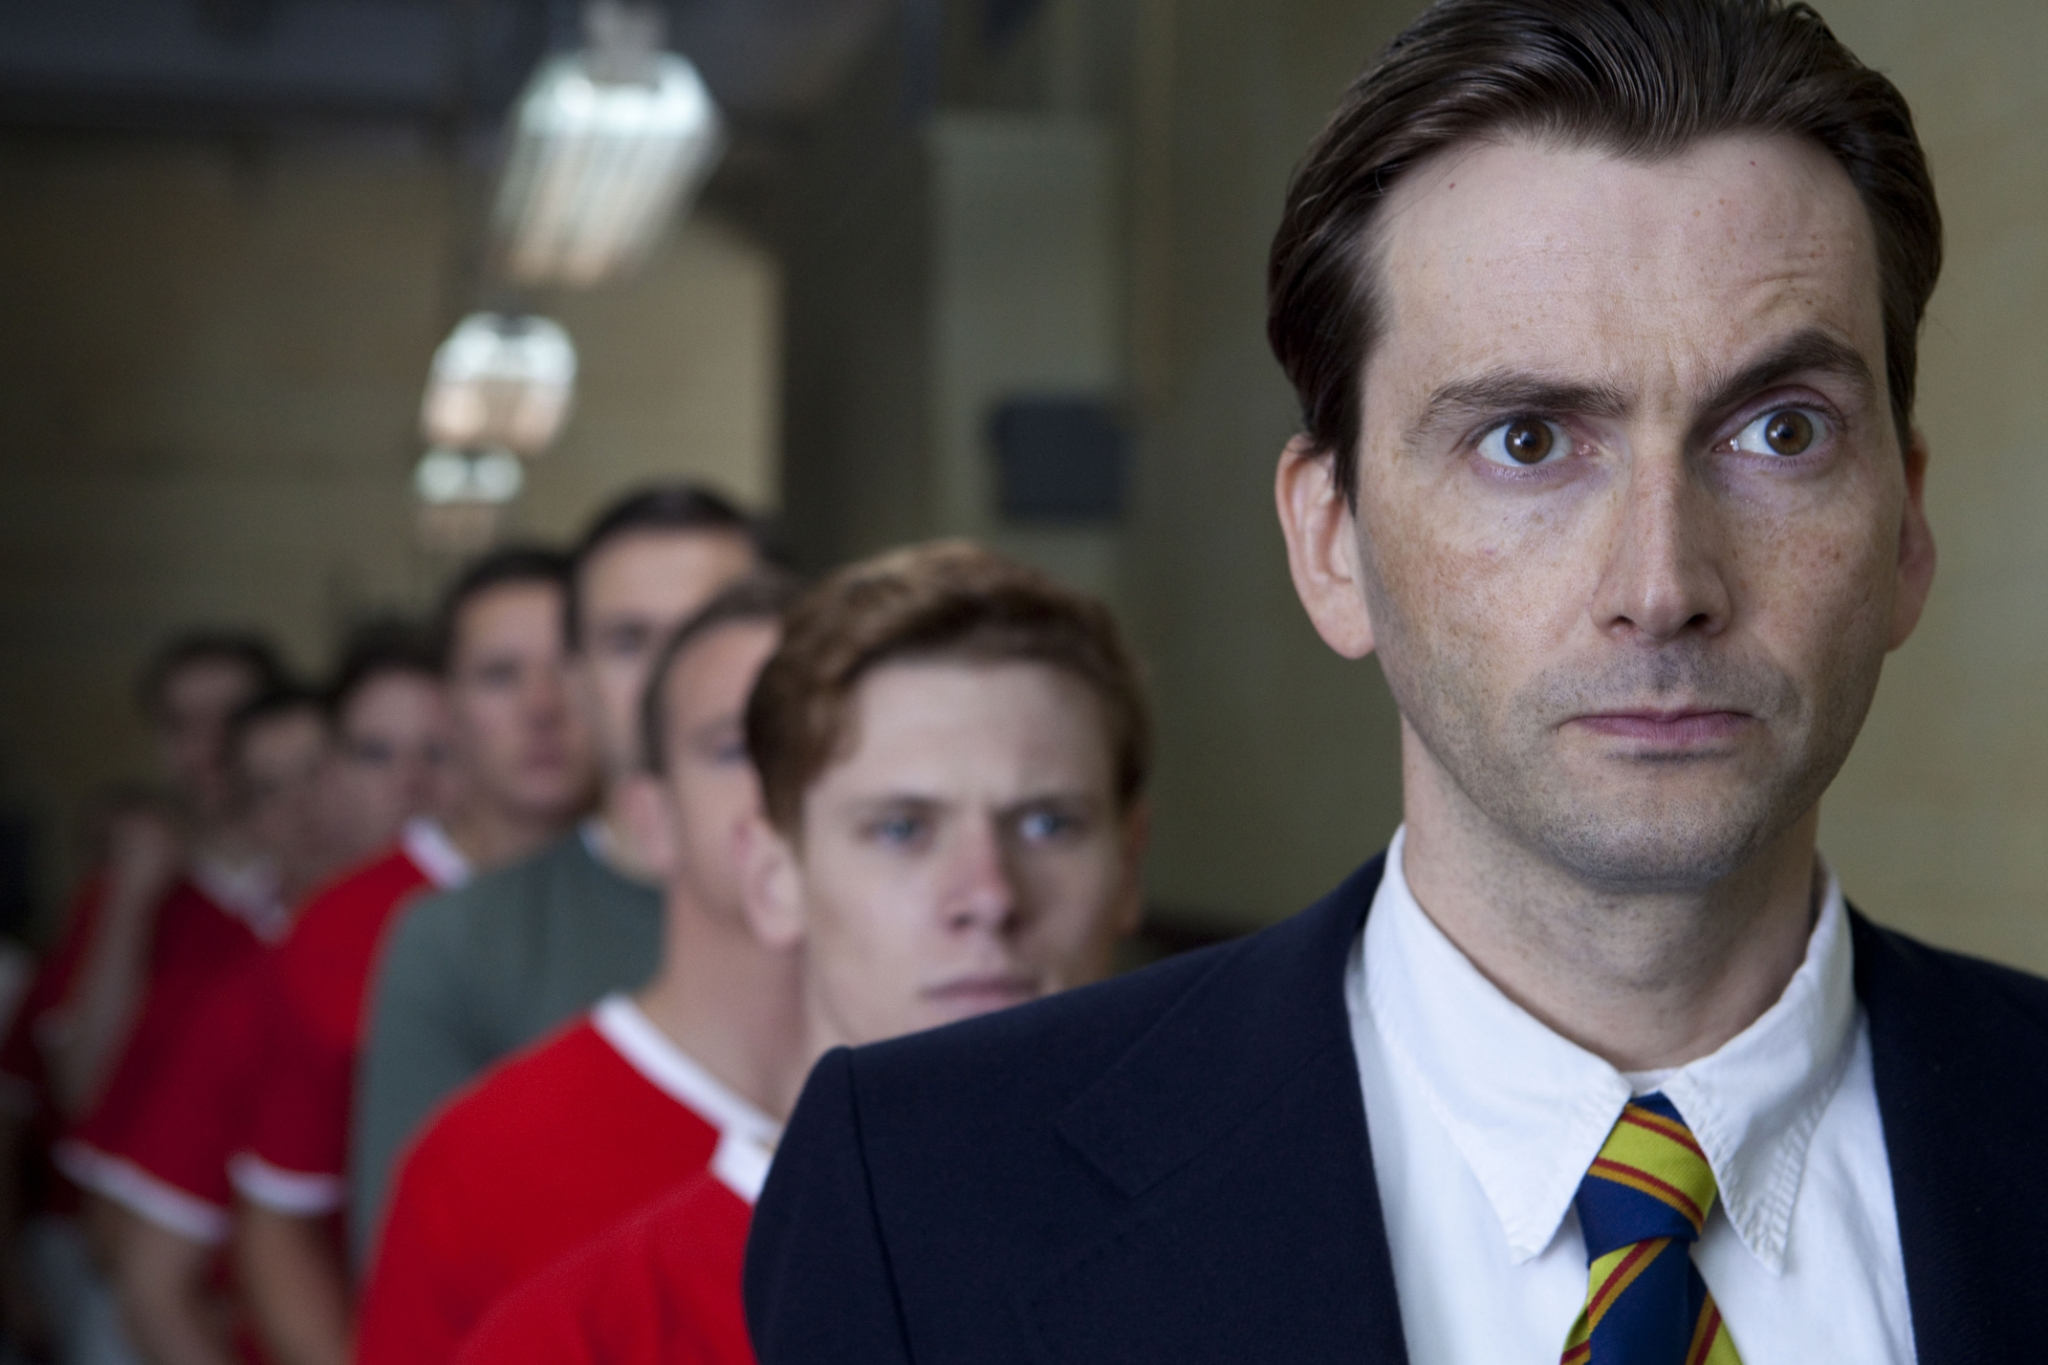 Tennant has specialized in portraying real-life figures. In the BBC telefilm United, he stepped into the shoes of Jimmy Murphy, assistant manager for the Manchester United football squad, as he attempts to pull together the team following the 1958 Munich plane crash that killed most of its players. Watch a clip.